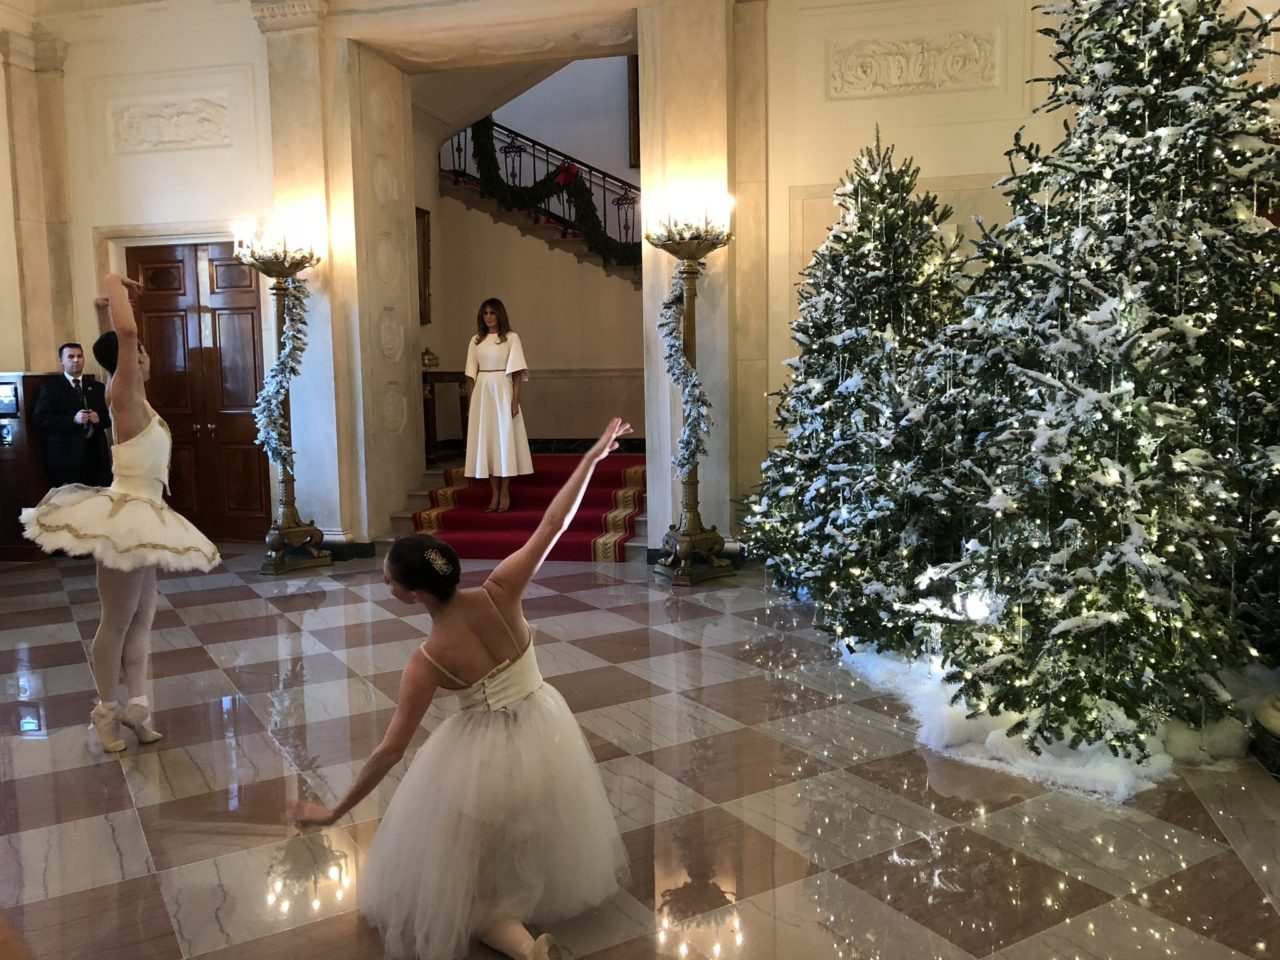 ballet dancers from vivid ballet company perform to live music from the nutcracker in the white house entryway